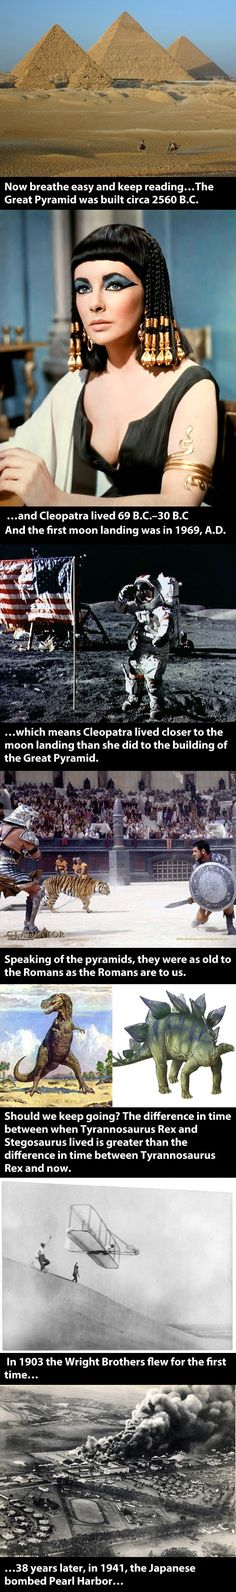 Time facts and the pyramids...